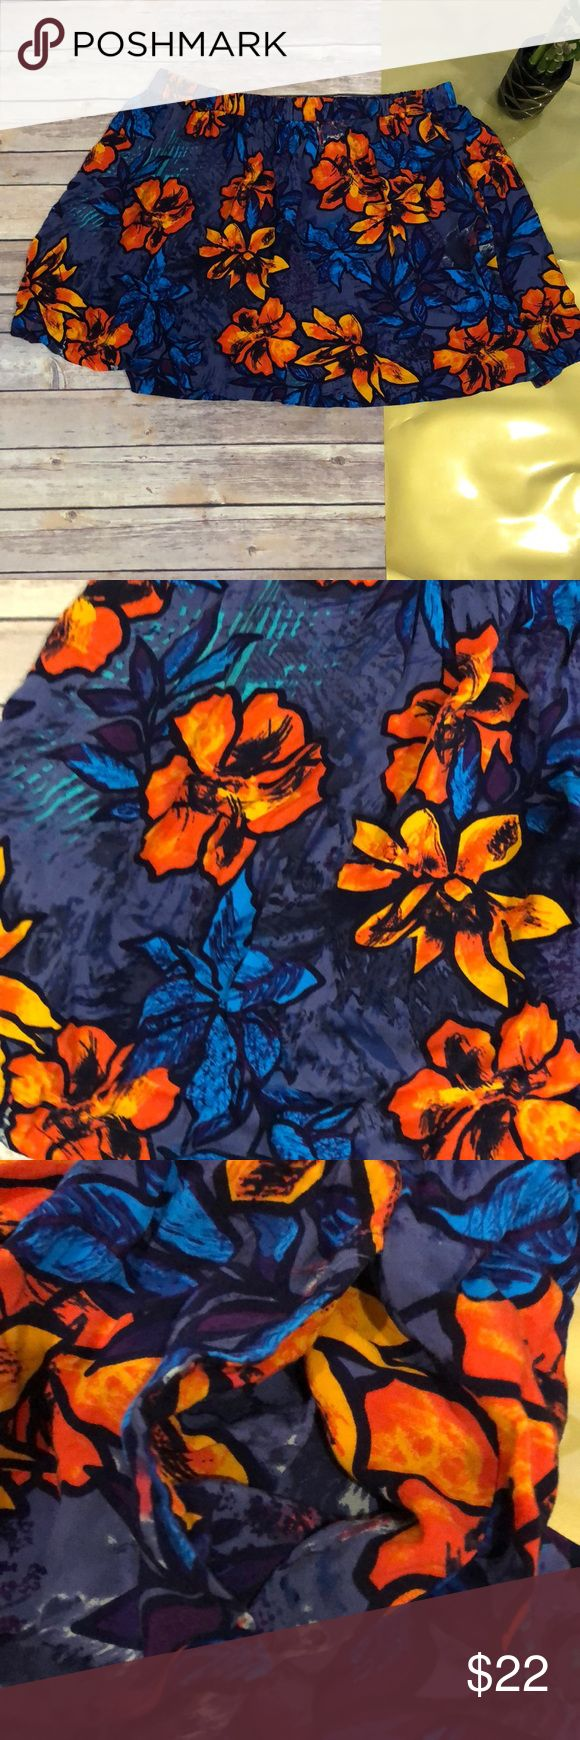 Floral French Connection Skirt XL Super fun Floral multi color skirt with elastic waist and hidden pockets. Blue, Purple, Orange, Aqua Blue etc.  16.5 waist length  17 length Excellent condition French Connection Skirts Mini